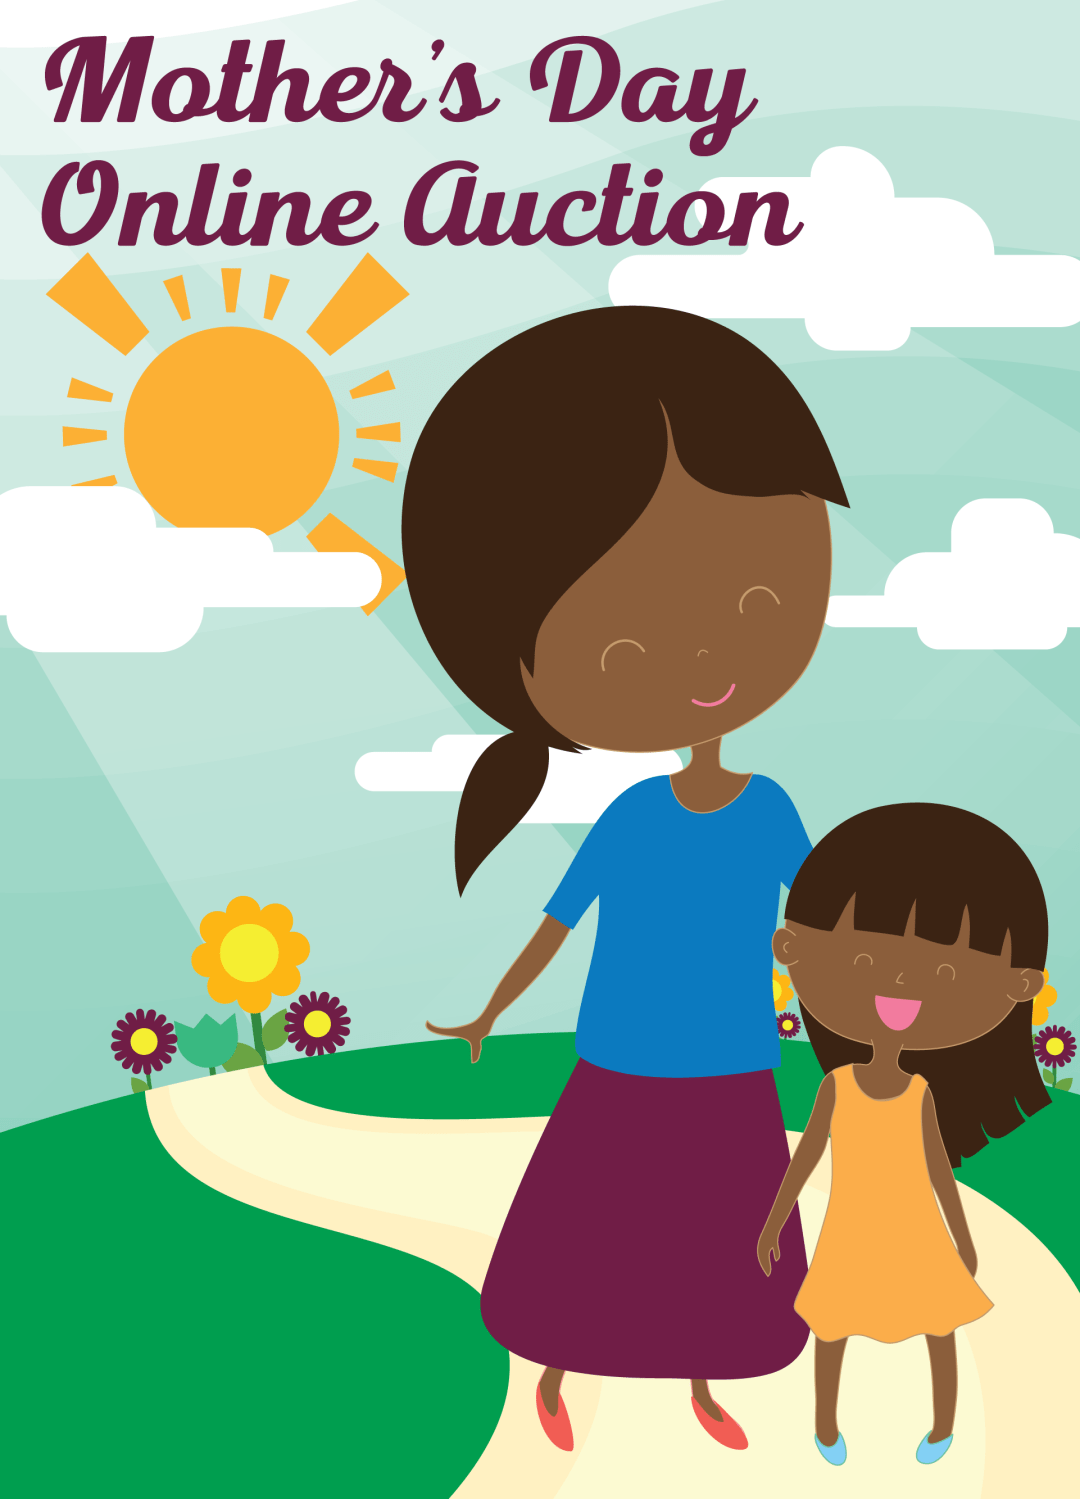 Cartoon picture of African American woman and her daughter on a path with flowers and sunshine behind them